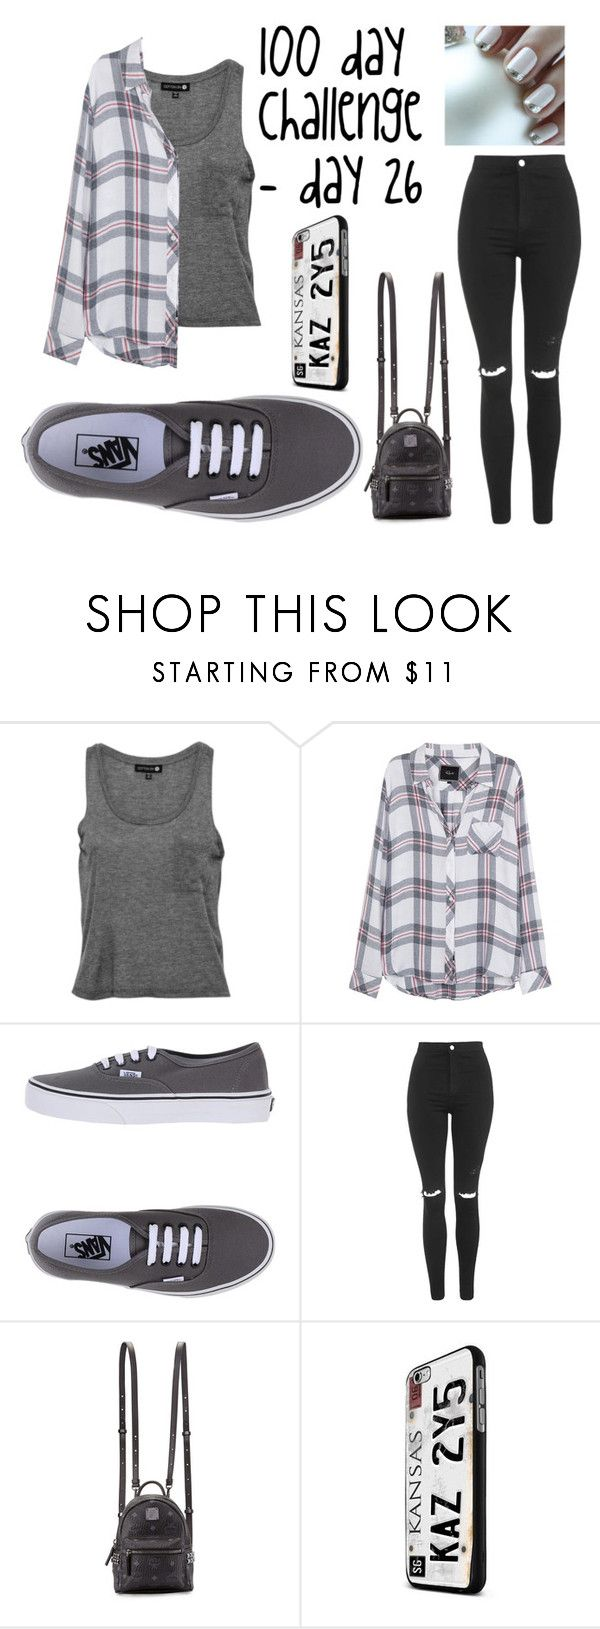 """100 day challenge - Shawn Mendes concert"" by zalaneacoles ❤ liked on Polyvore featuring Rails, Vans, Topshop and MCM"